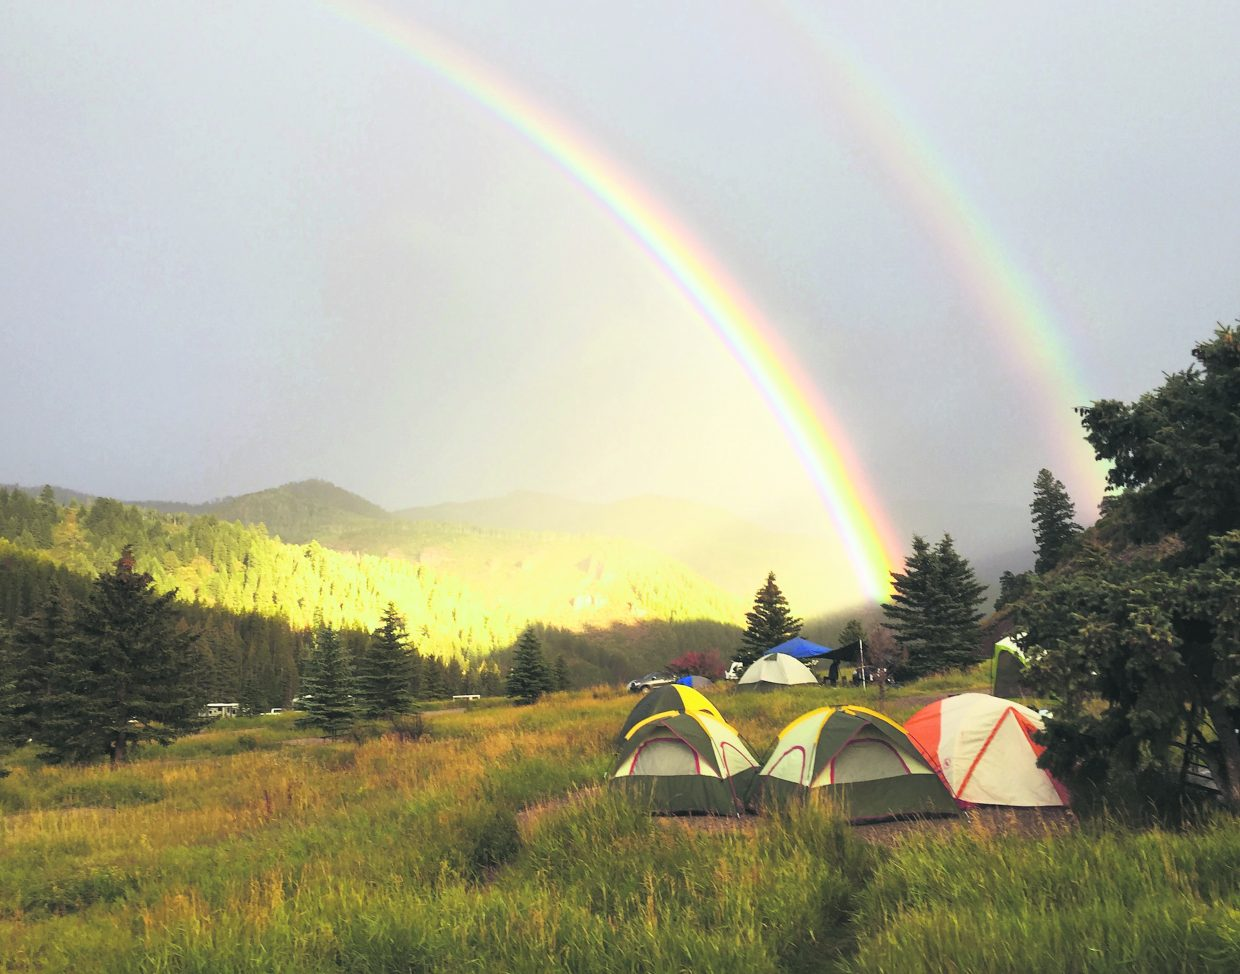 A rare morning double rainbow emerges over the Brush Creek Valley and the Sylvan Lake Campground over Labor Day weekend.